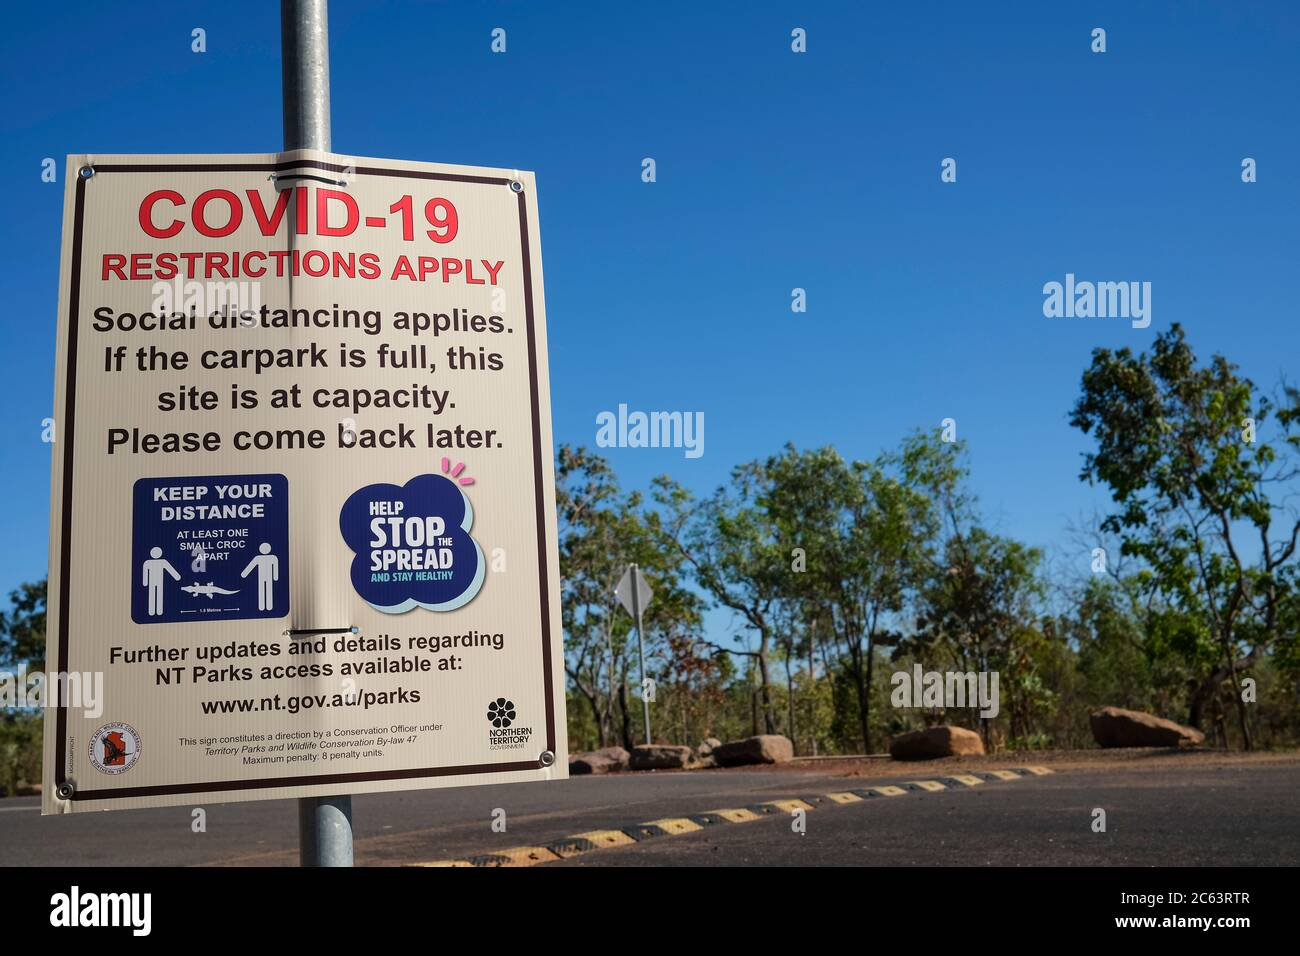 a-covid-19-sign-at-the-entrance-of-litch